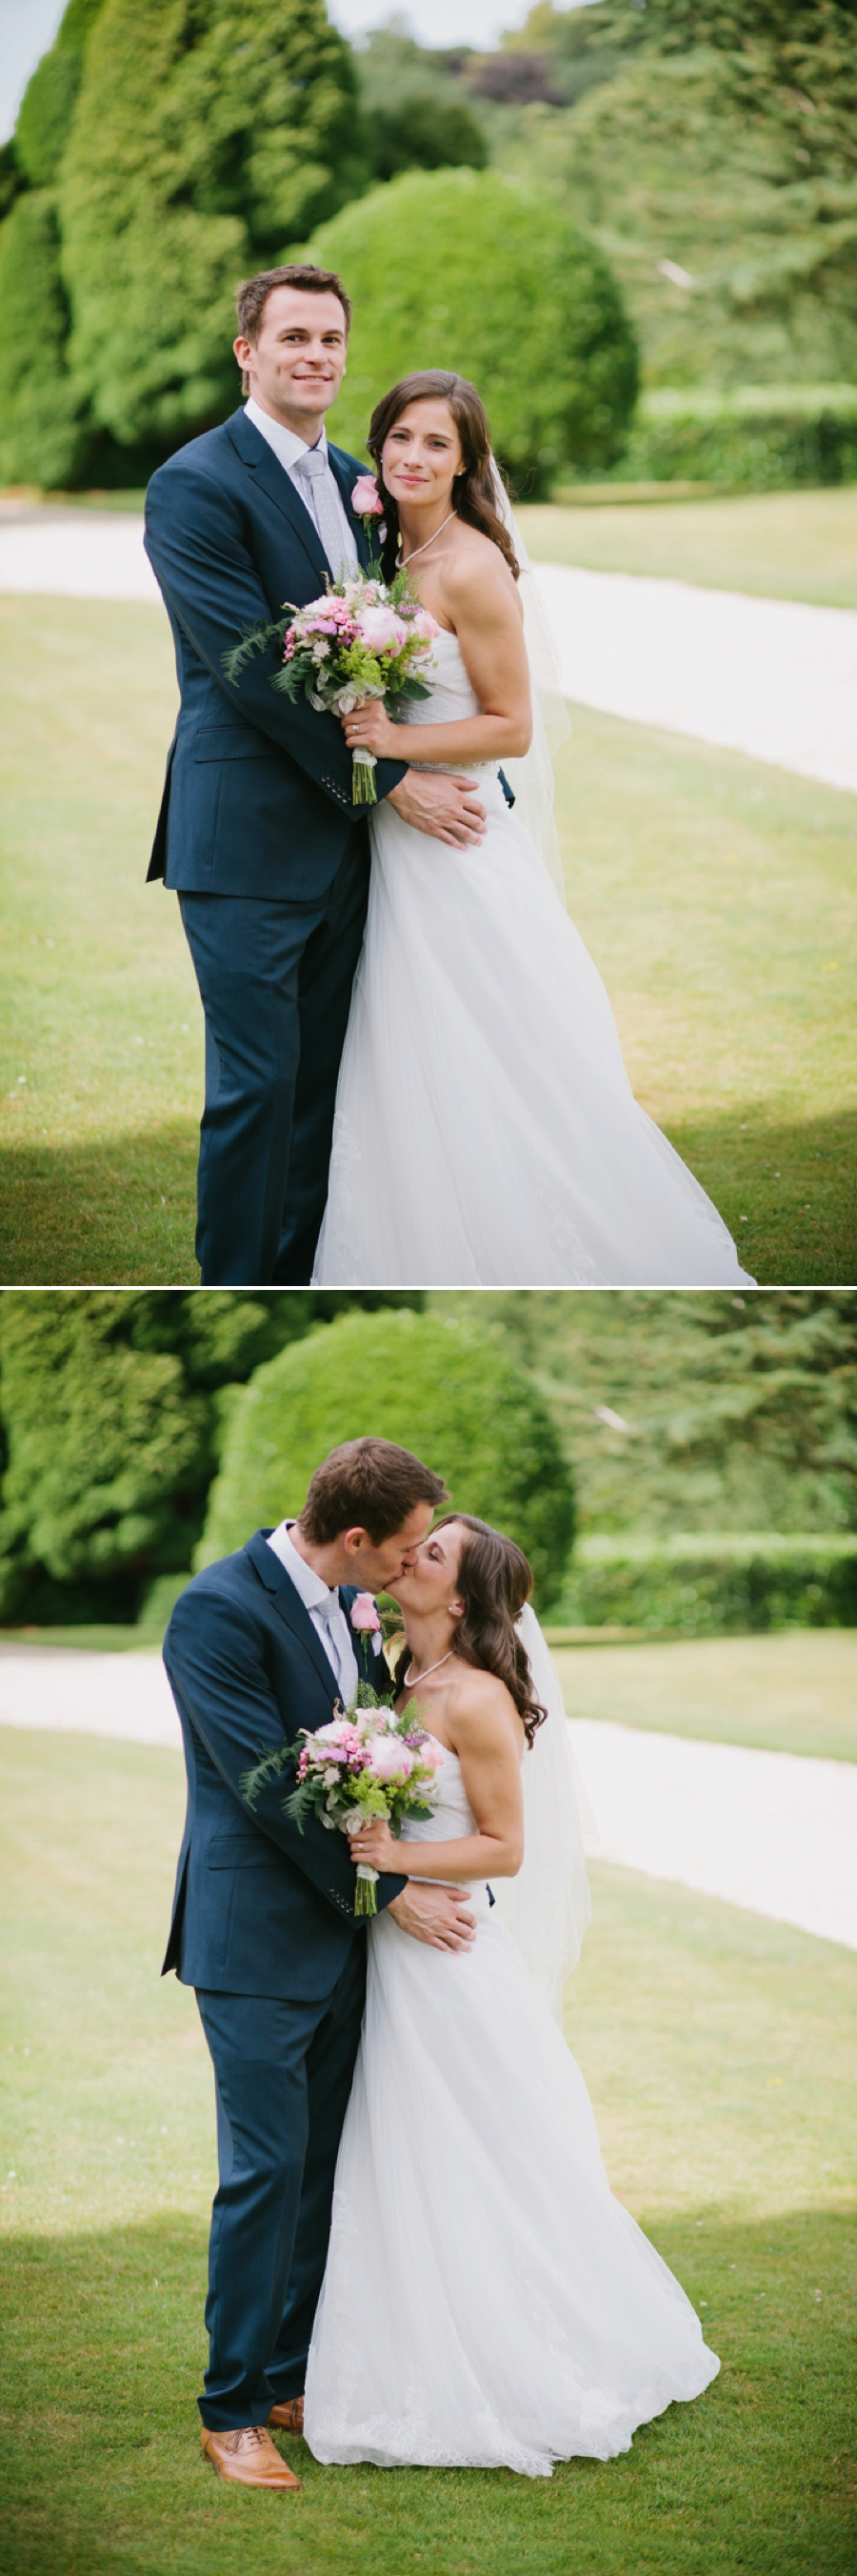 Somerset Wedding Photographer Huntsham Court Wedding Julie and Chris_0114.jpg